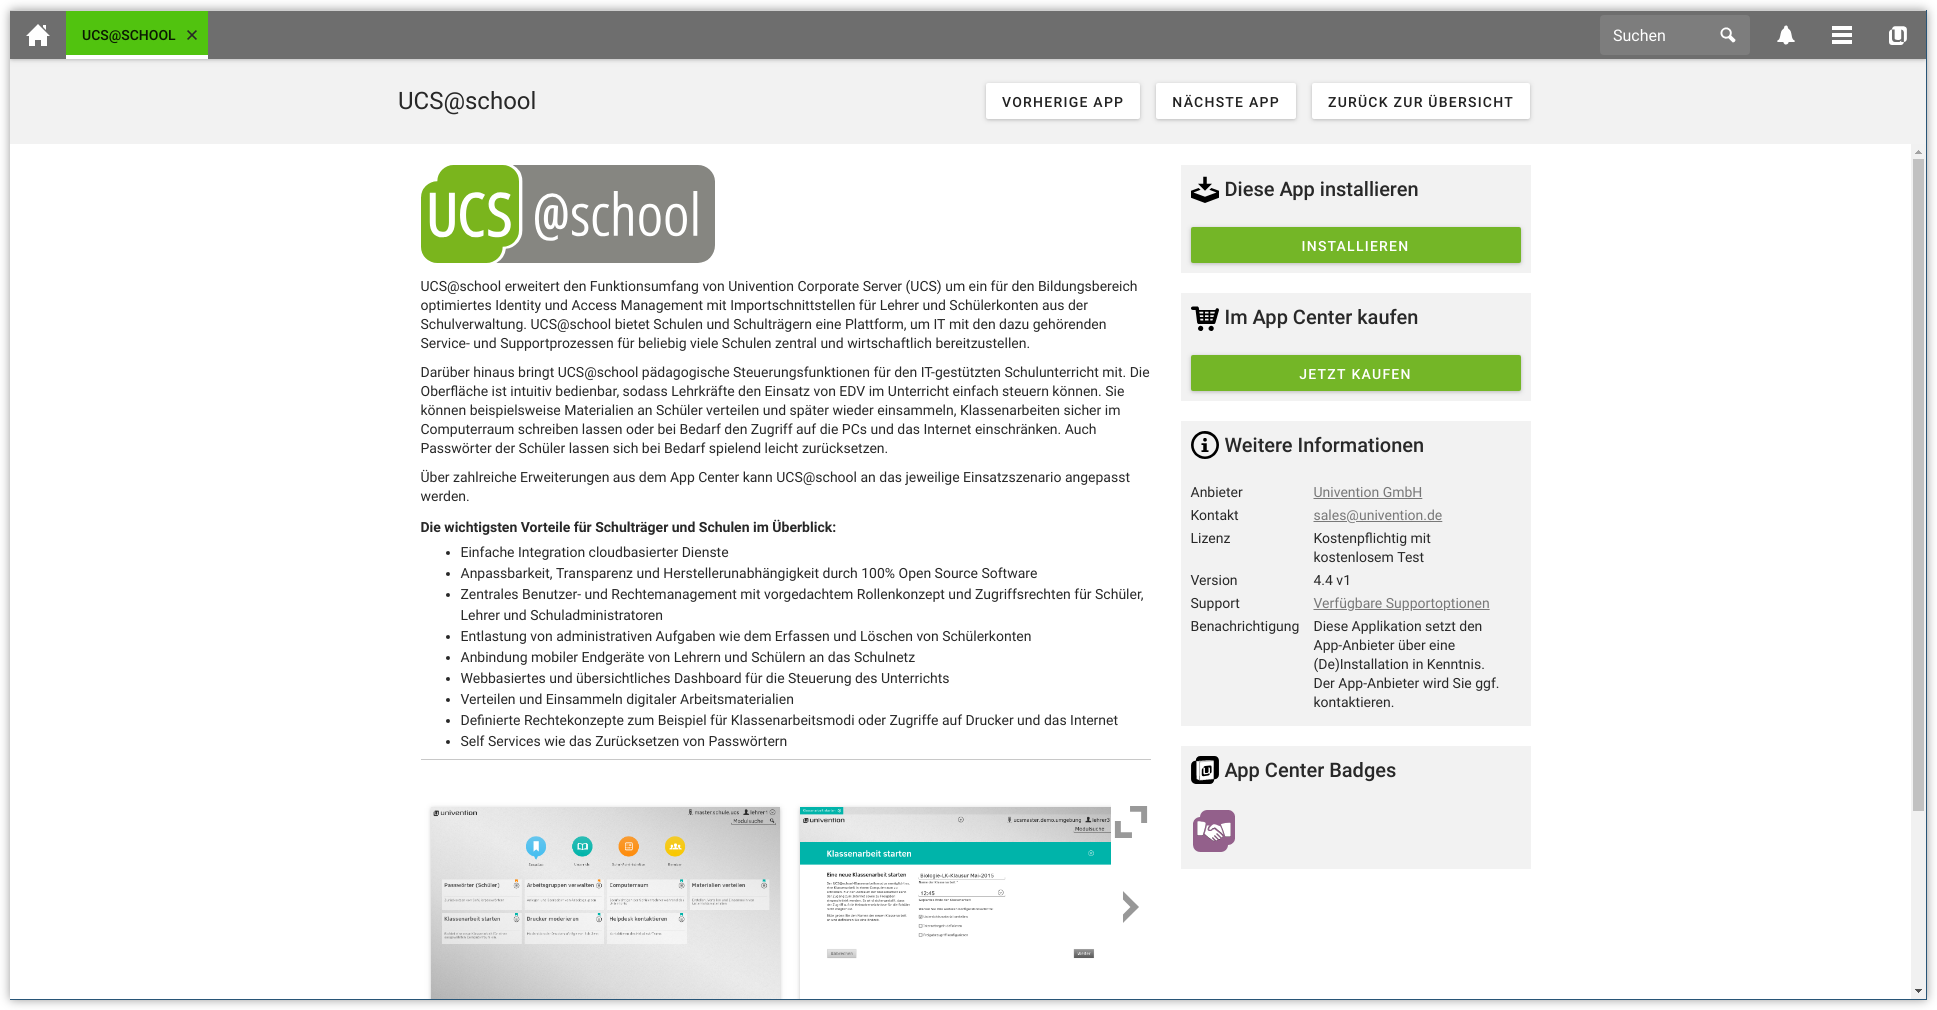 Installation von UCS@school über das Univention App Center